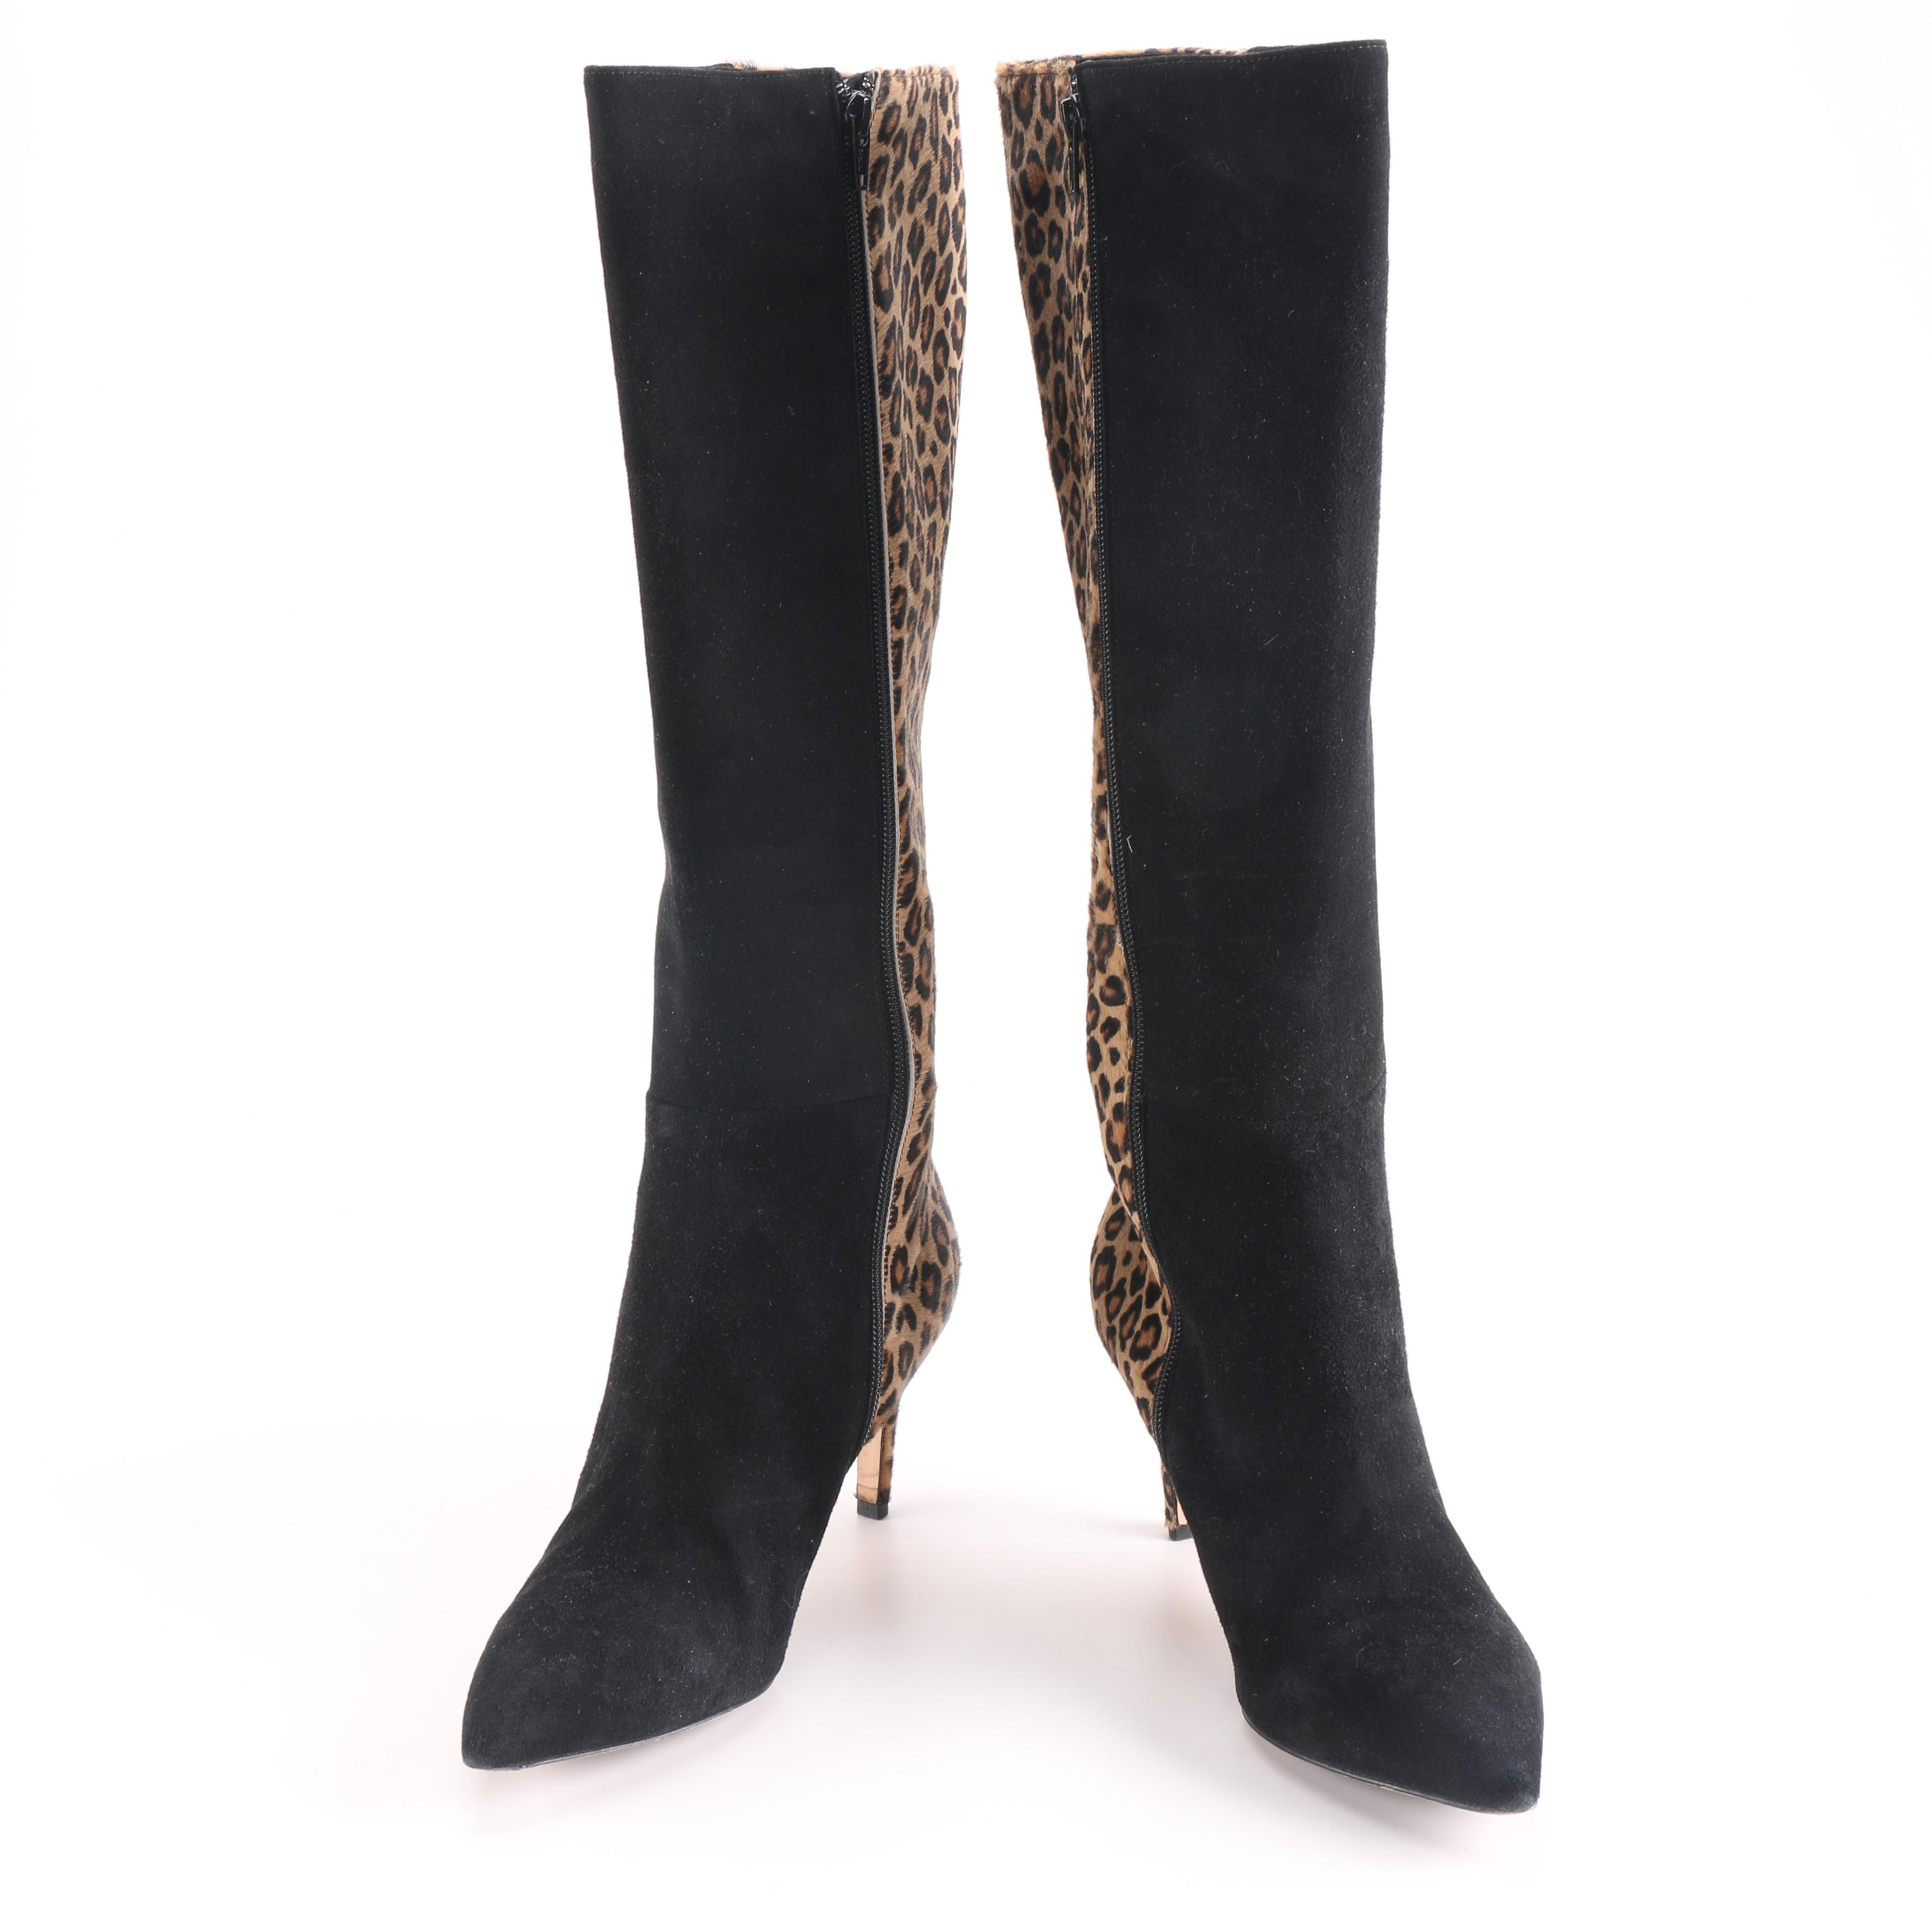 Pair of Bruno Ricci Calf Hair and Suede Knee High Boots